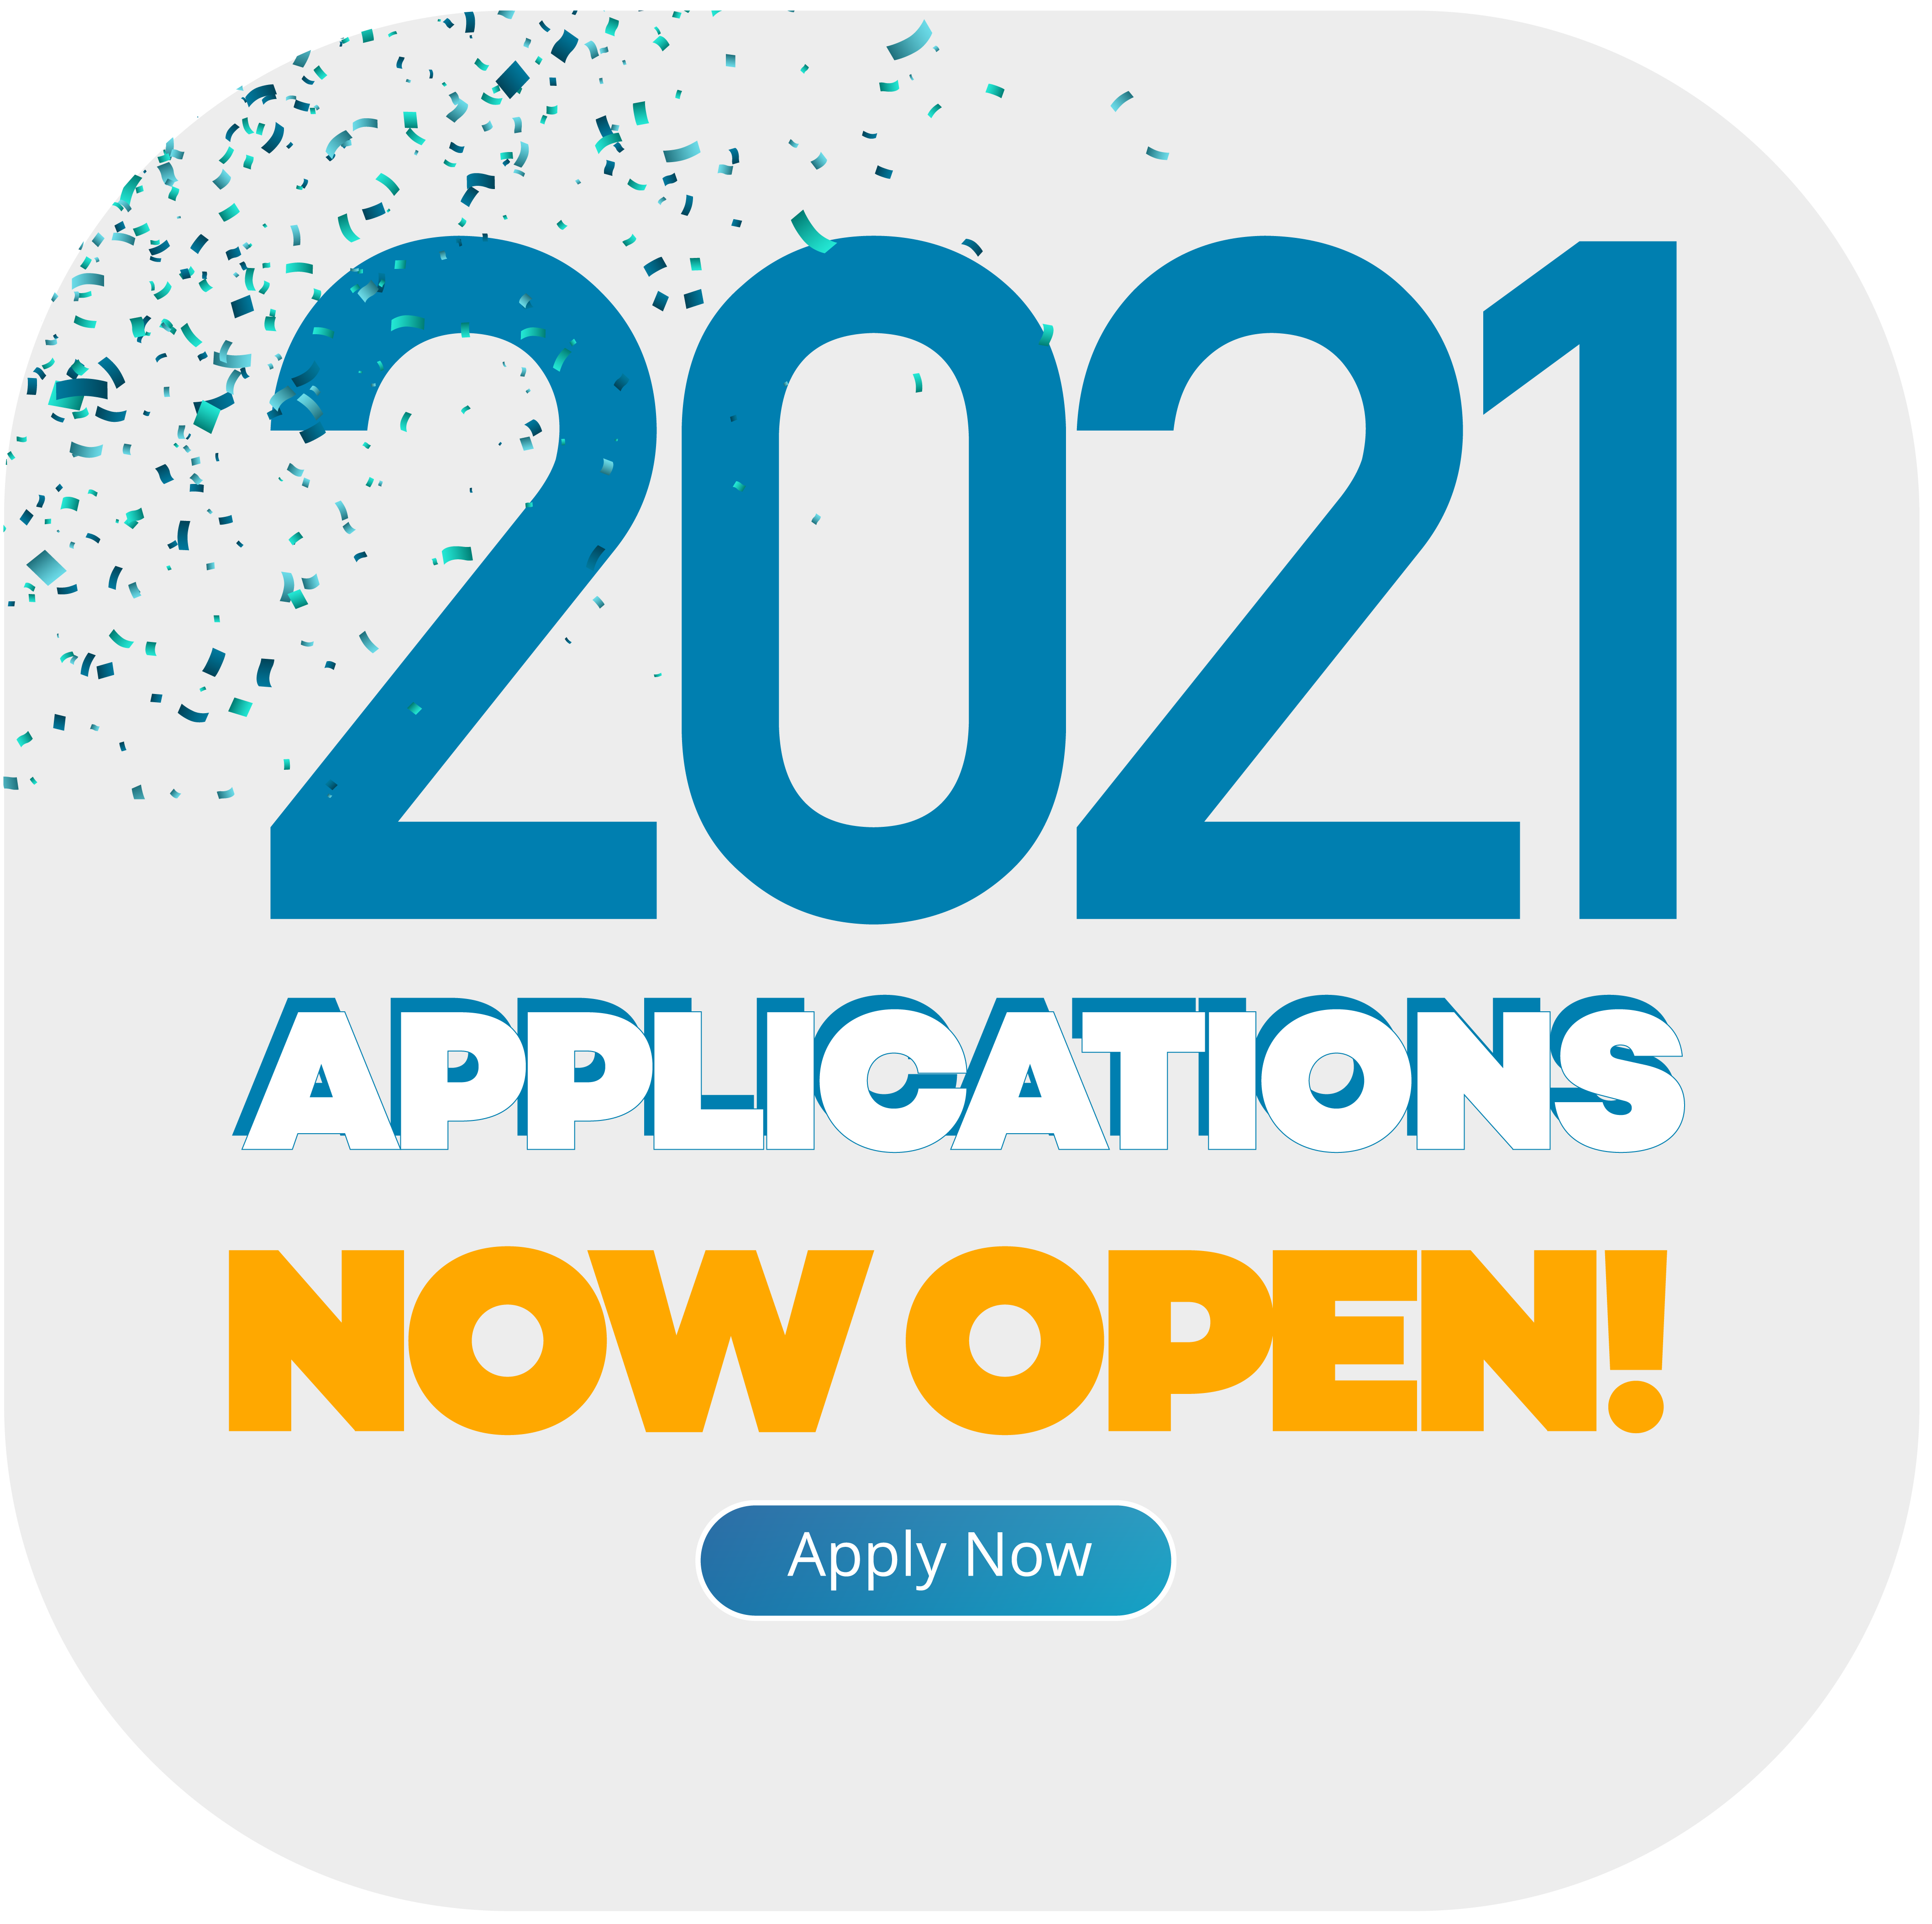 Student Accommodation - Applications Now Open Image